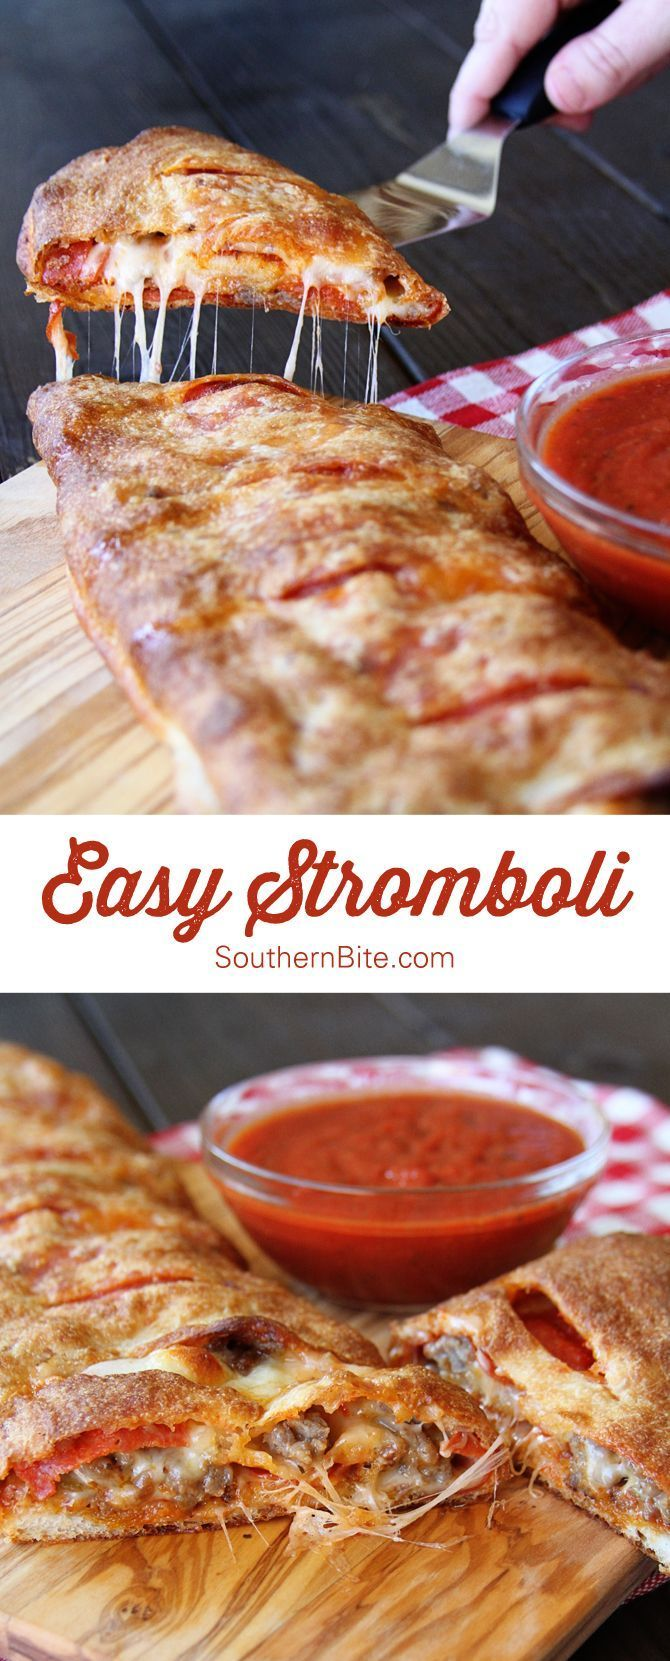 Easy Stromboli recipe from Southern Bite. A 5 ingredient recipe that will have you not wanting to order that take out every again.